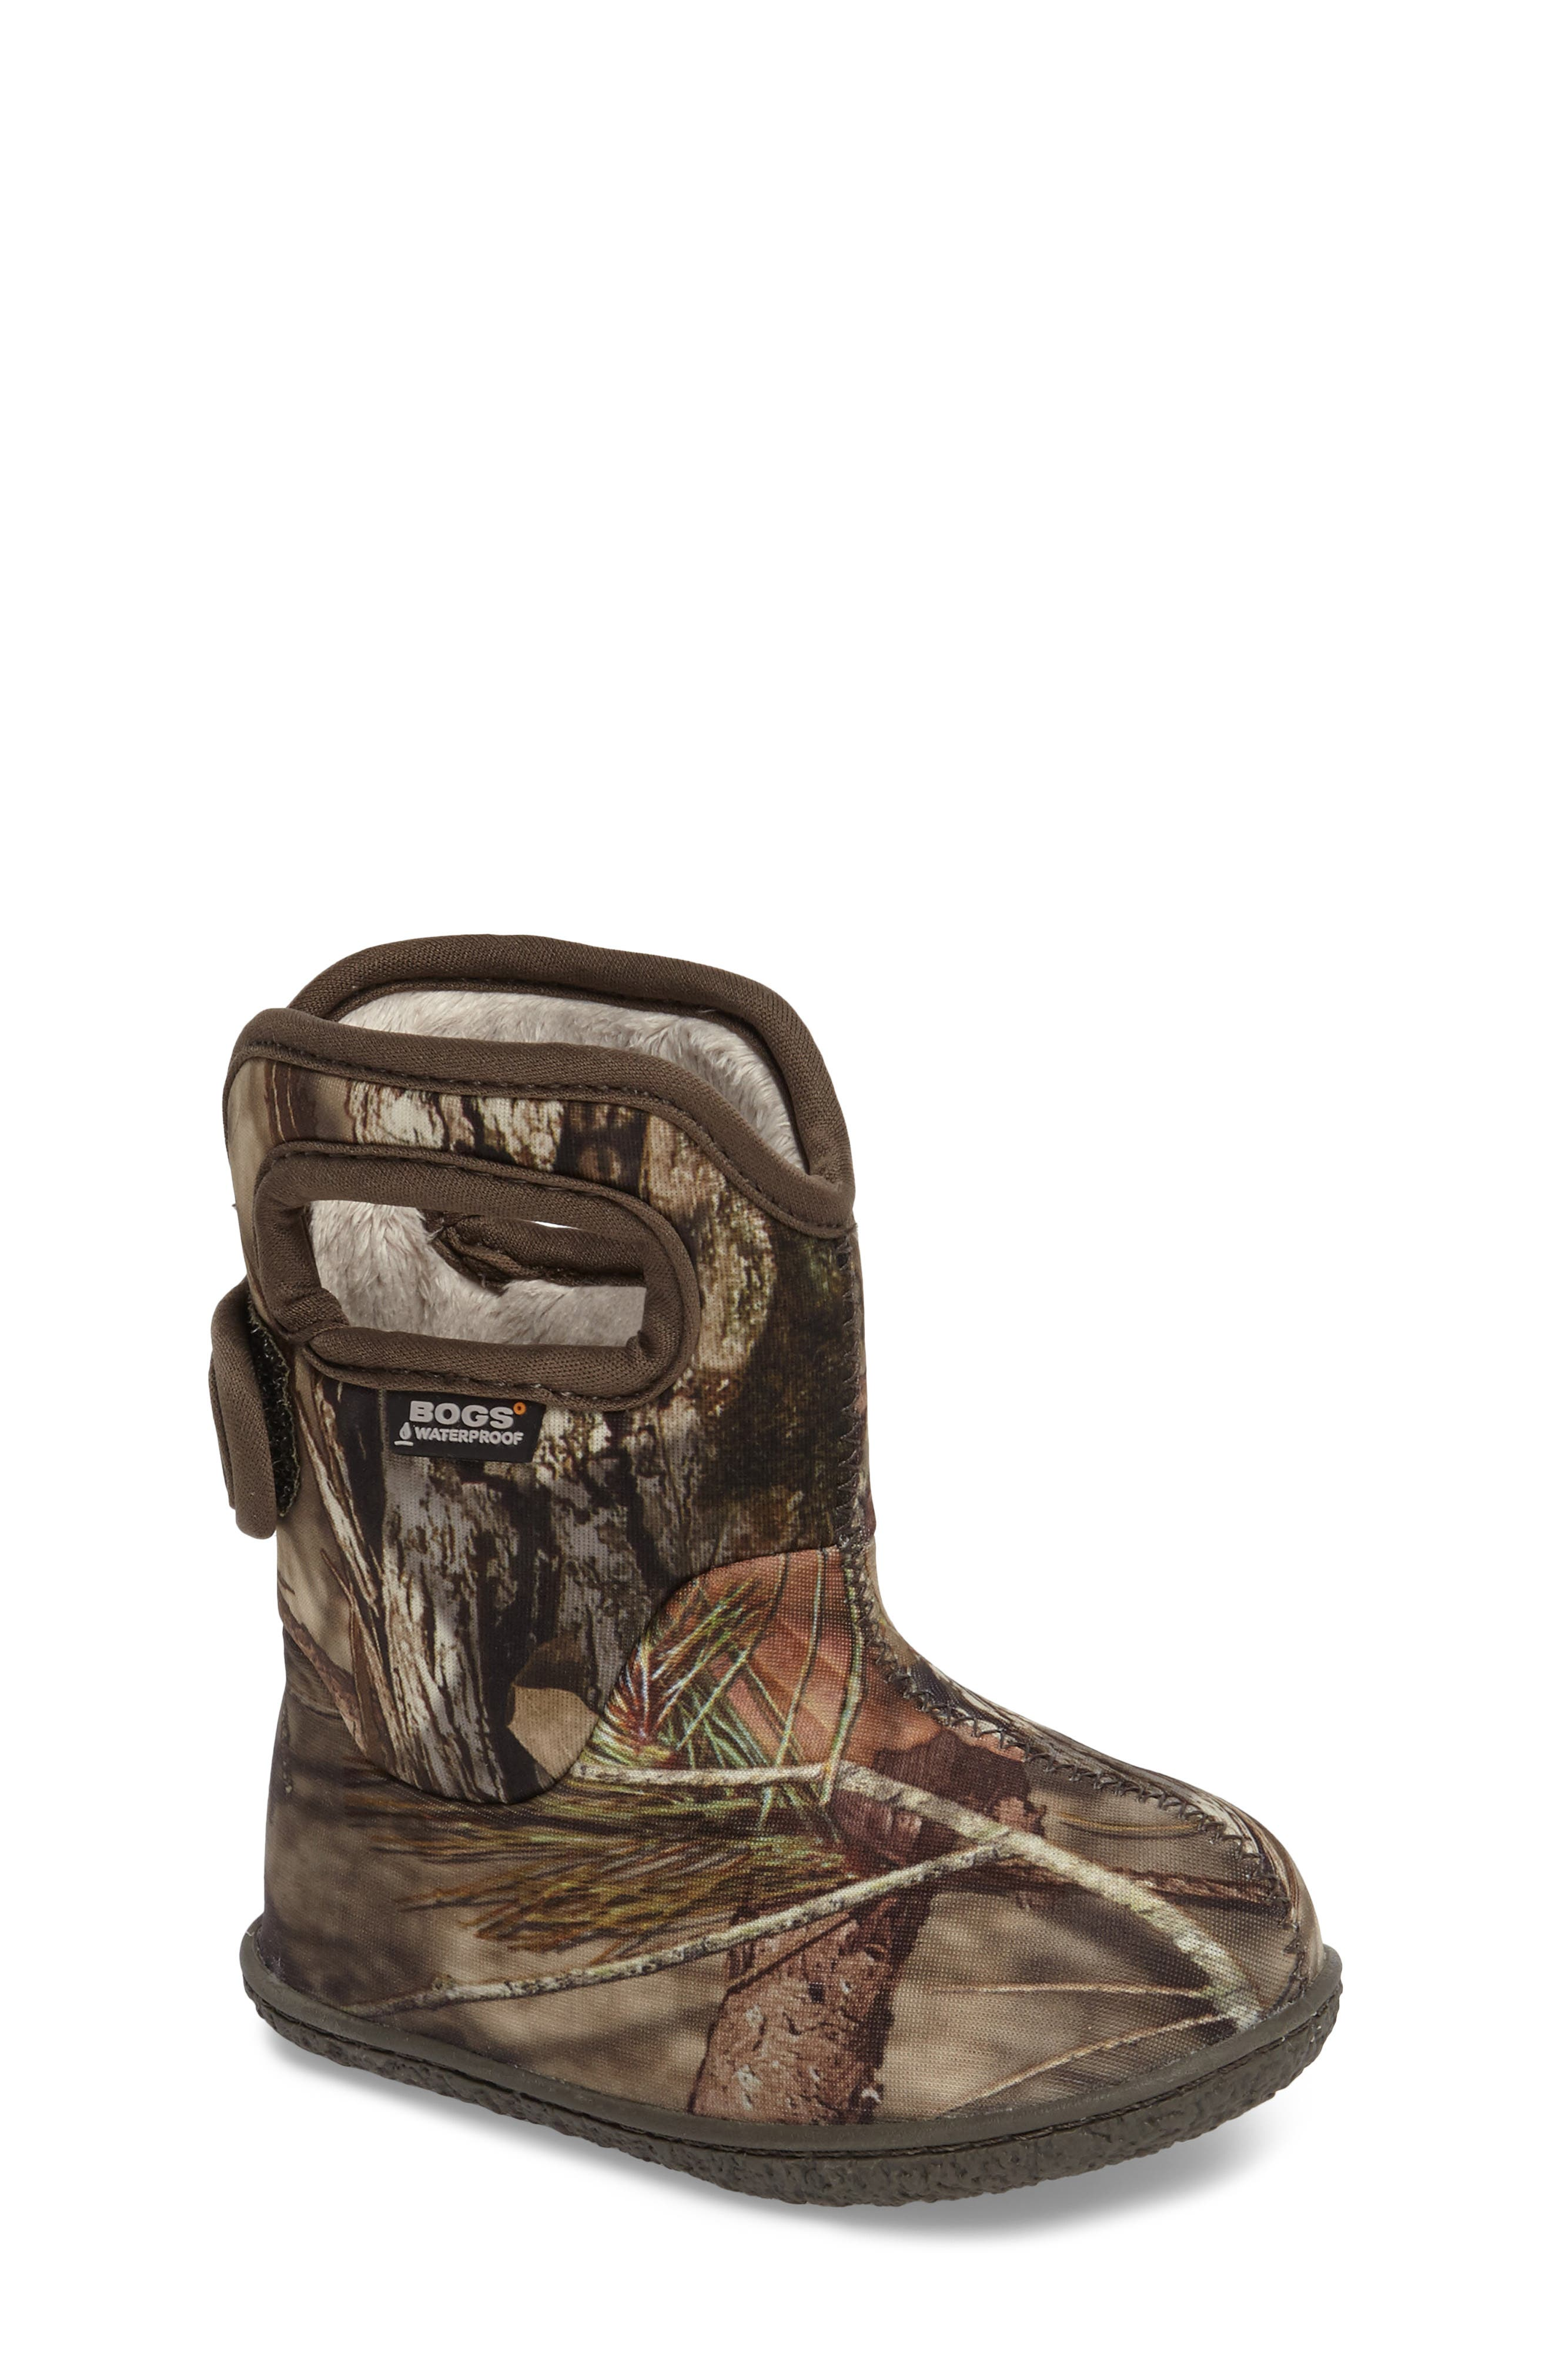 Baby Bogs Classic Camo Insulated Waterproof Boot,                         Main,                         color, MOSSY OAK COUNTRY